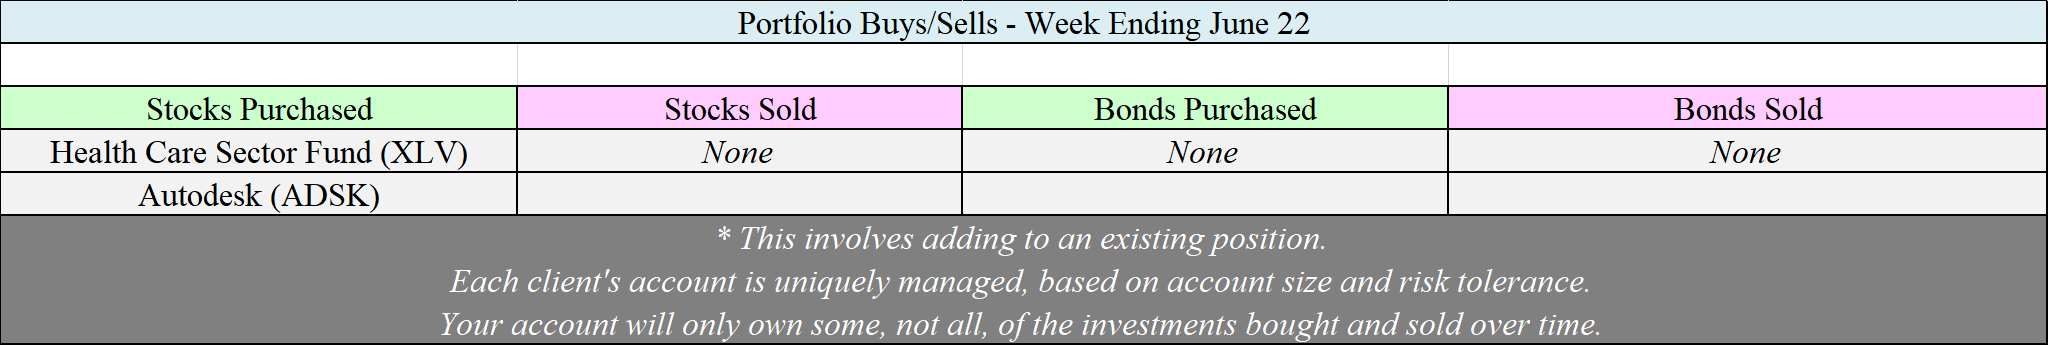 Allocation Changes - 06-22-18.png